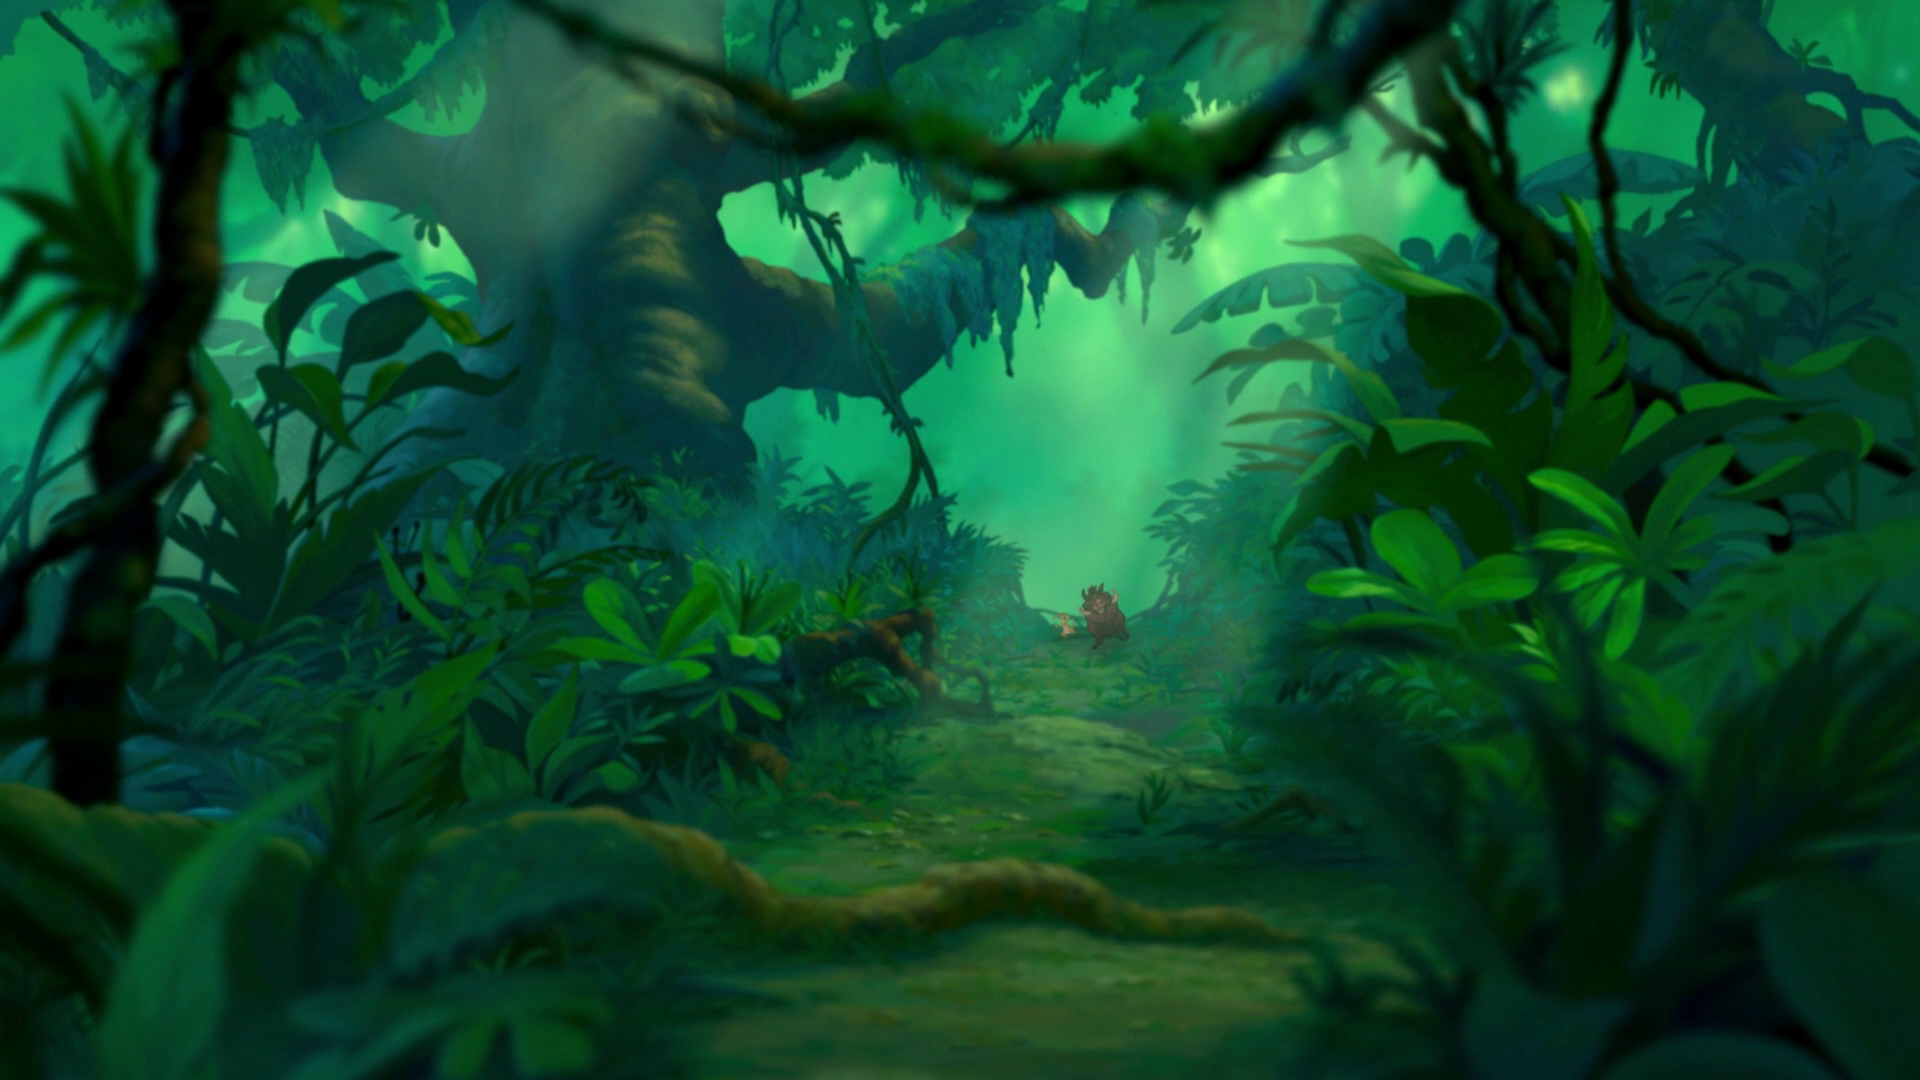 Lion King of The Jungle Wallpaper The Lion King · Inner Jungle